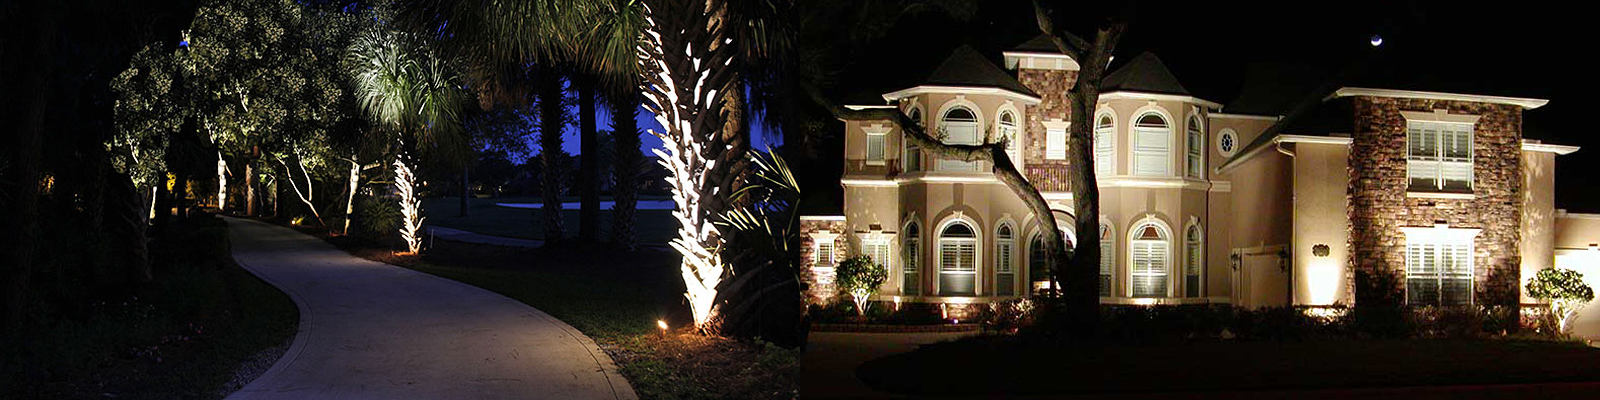 Exterior Home Lighting Services Jacksonville Fl